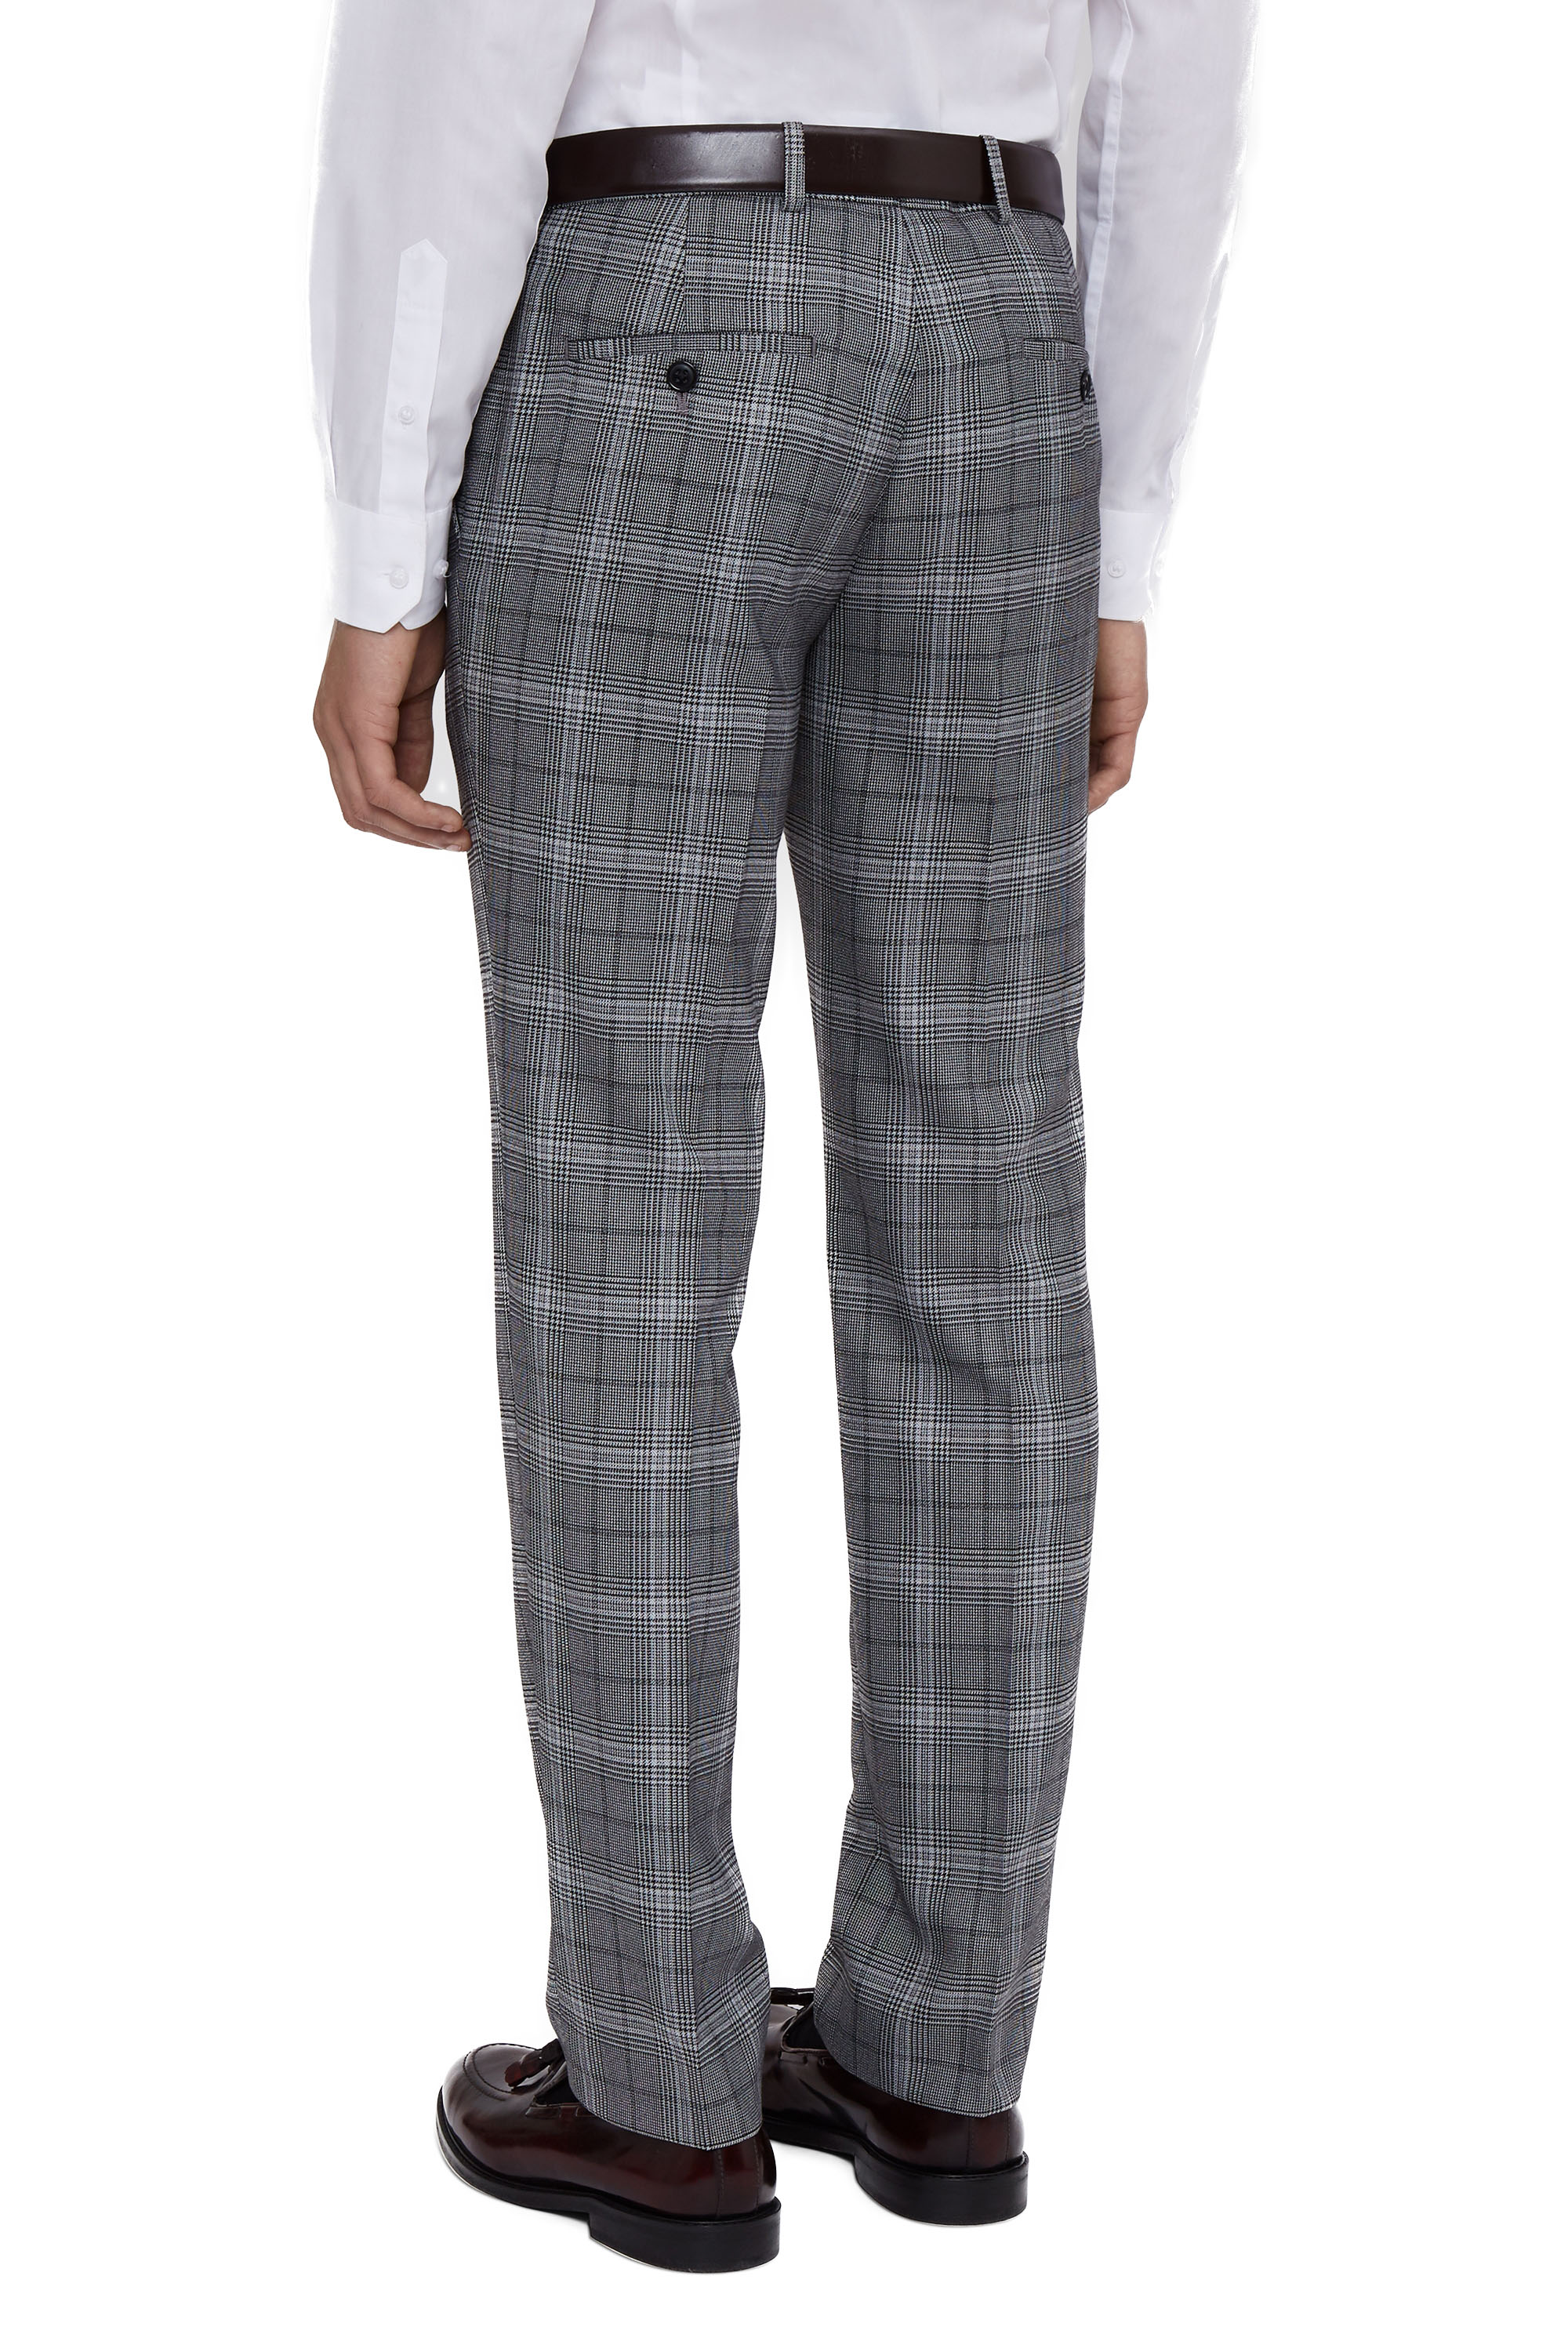 Moss London Mens Check Grey Suit Trousers Skinny Fit Prince Of Wales Pants | EBay